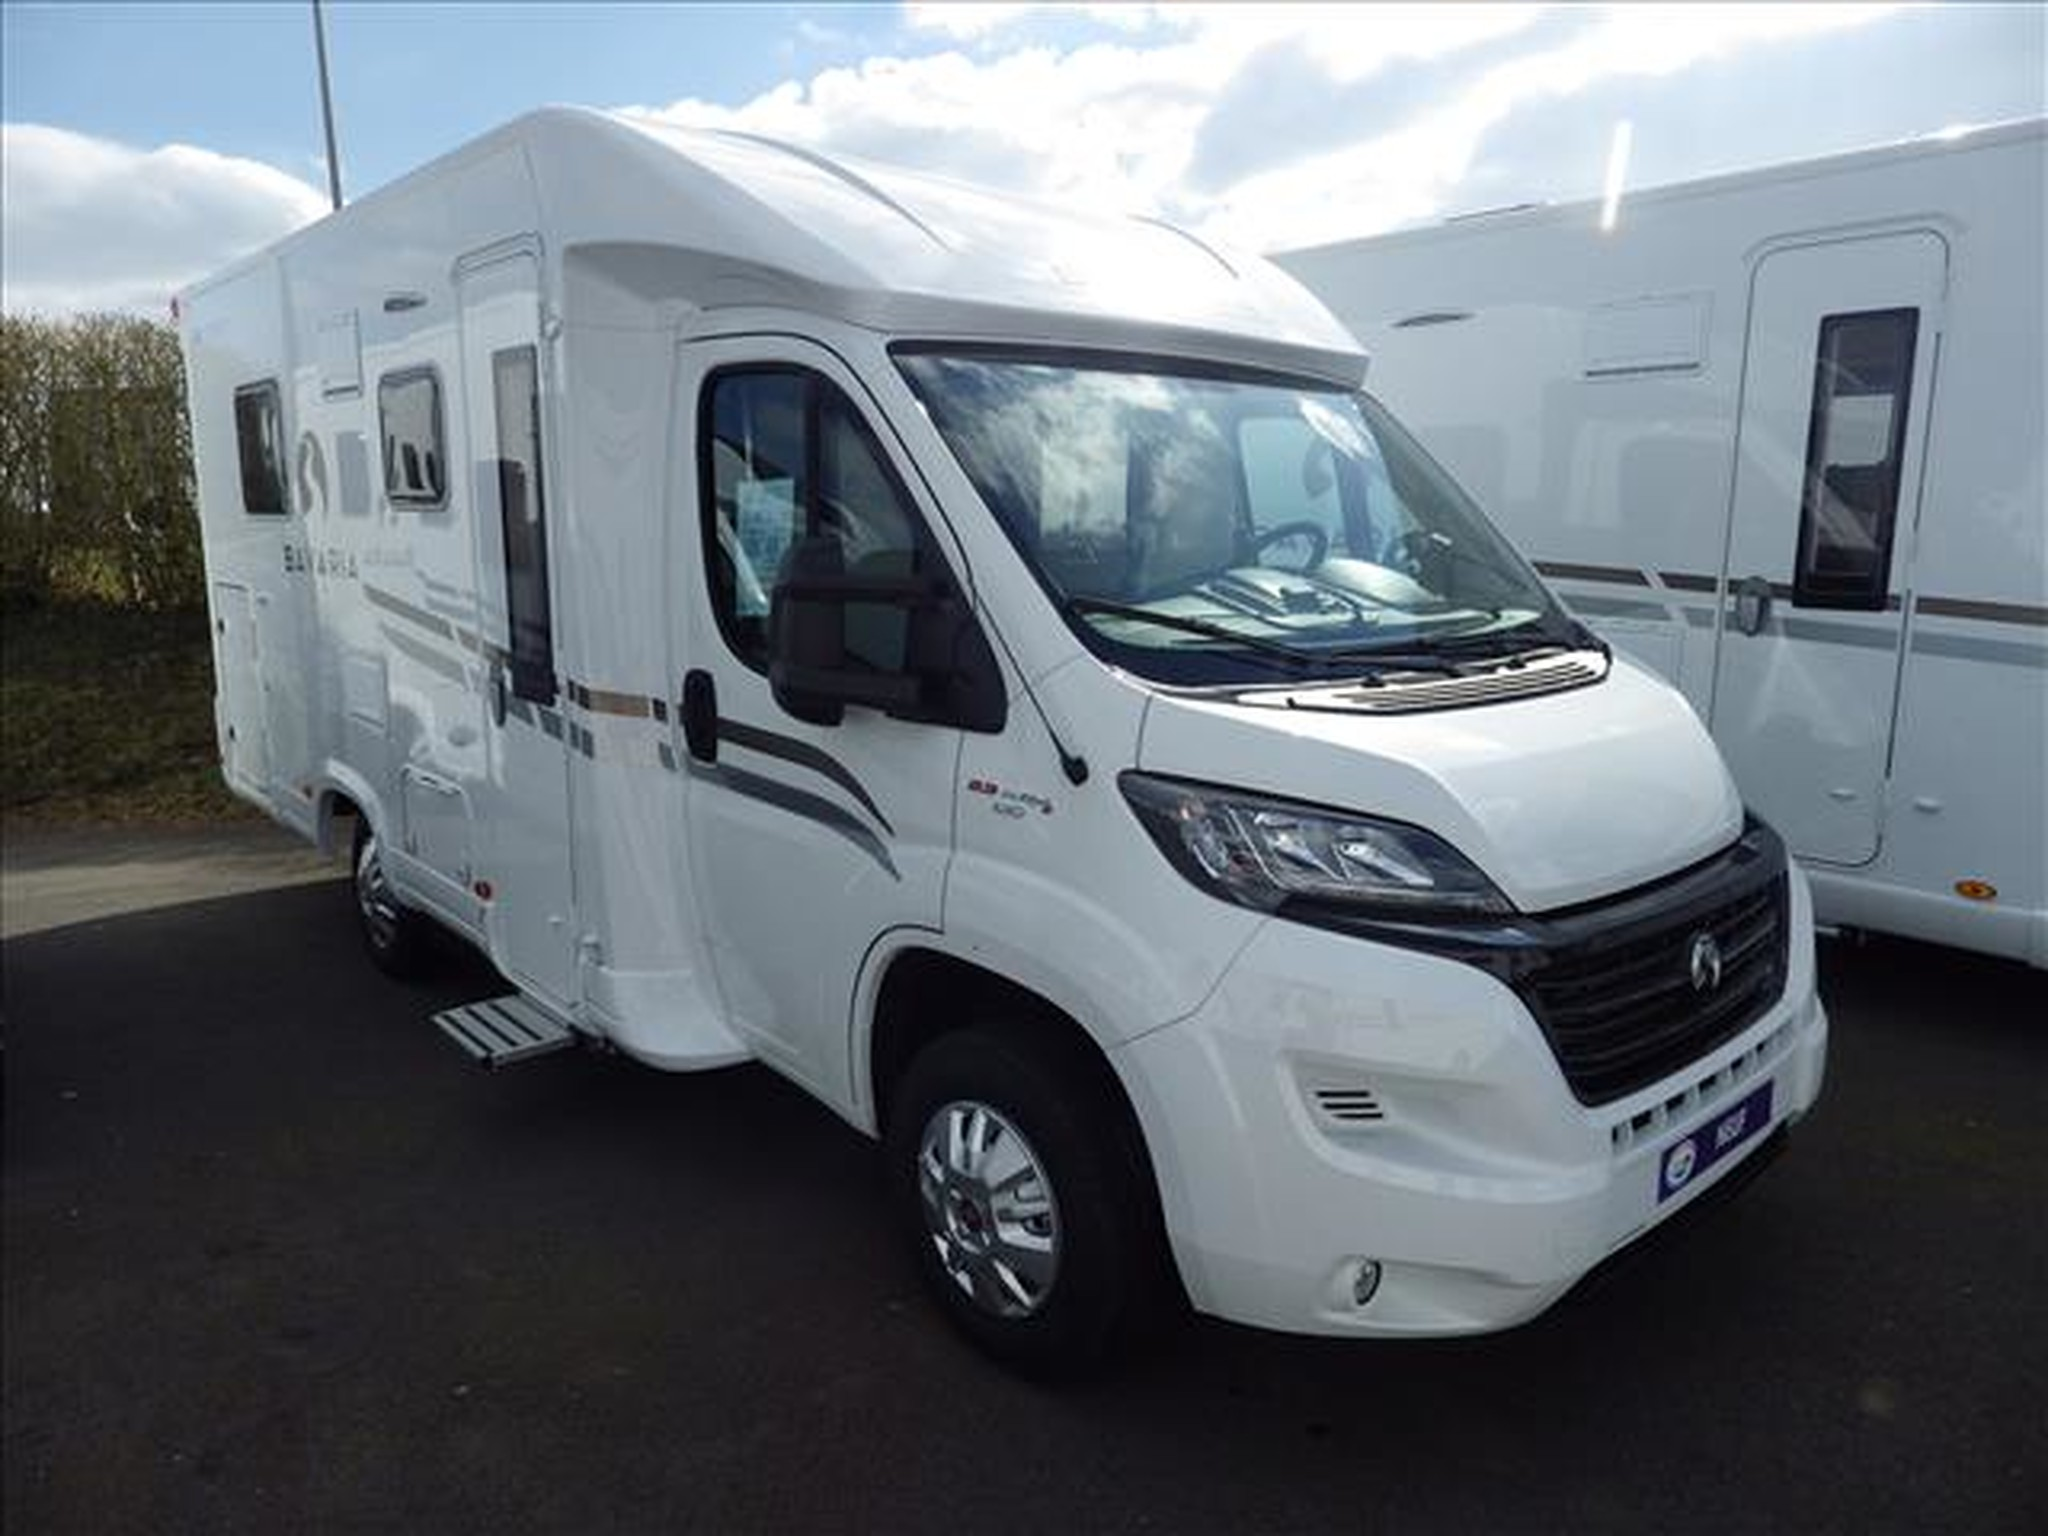 Camping-car BAVARIA T 650 C STYLE FIAT DUCATO 2.3 JTD 130